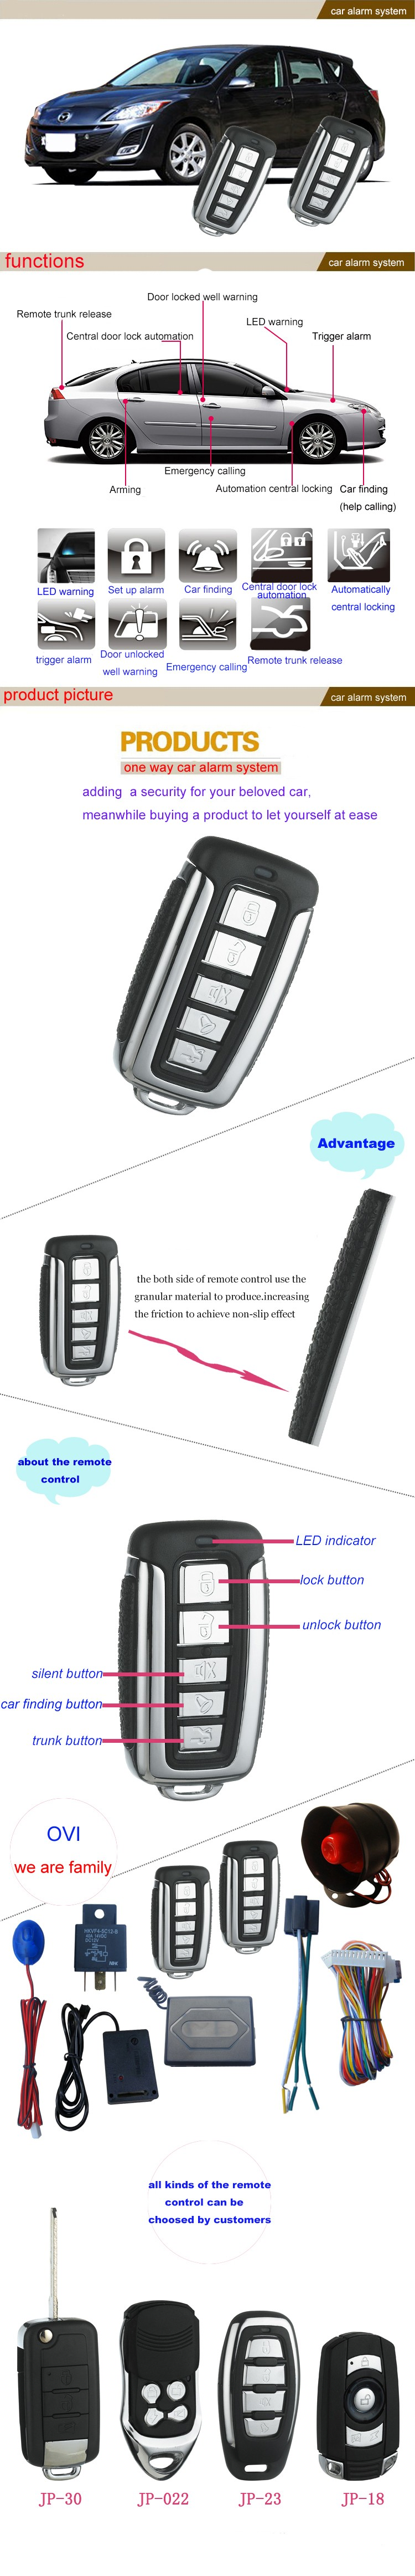 One Way Car Alarm System with Central Door Locking System Anti-hijacking Car Alarm System